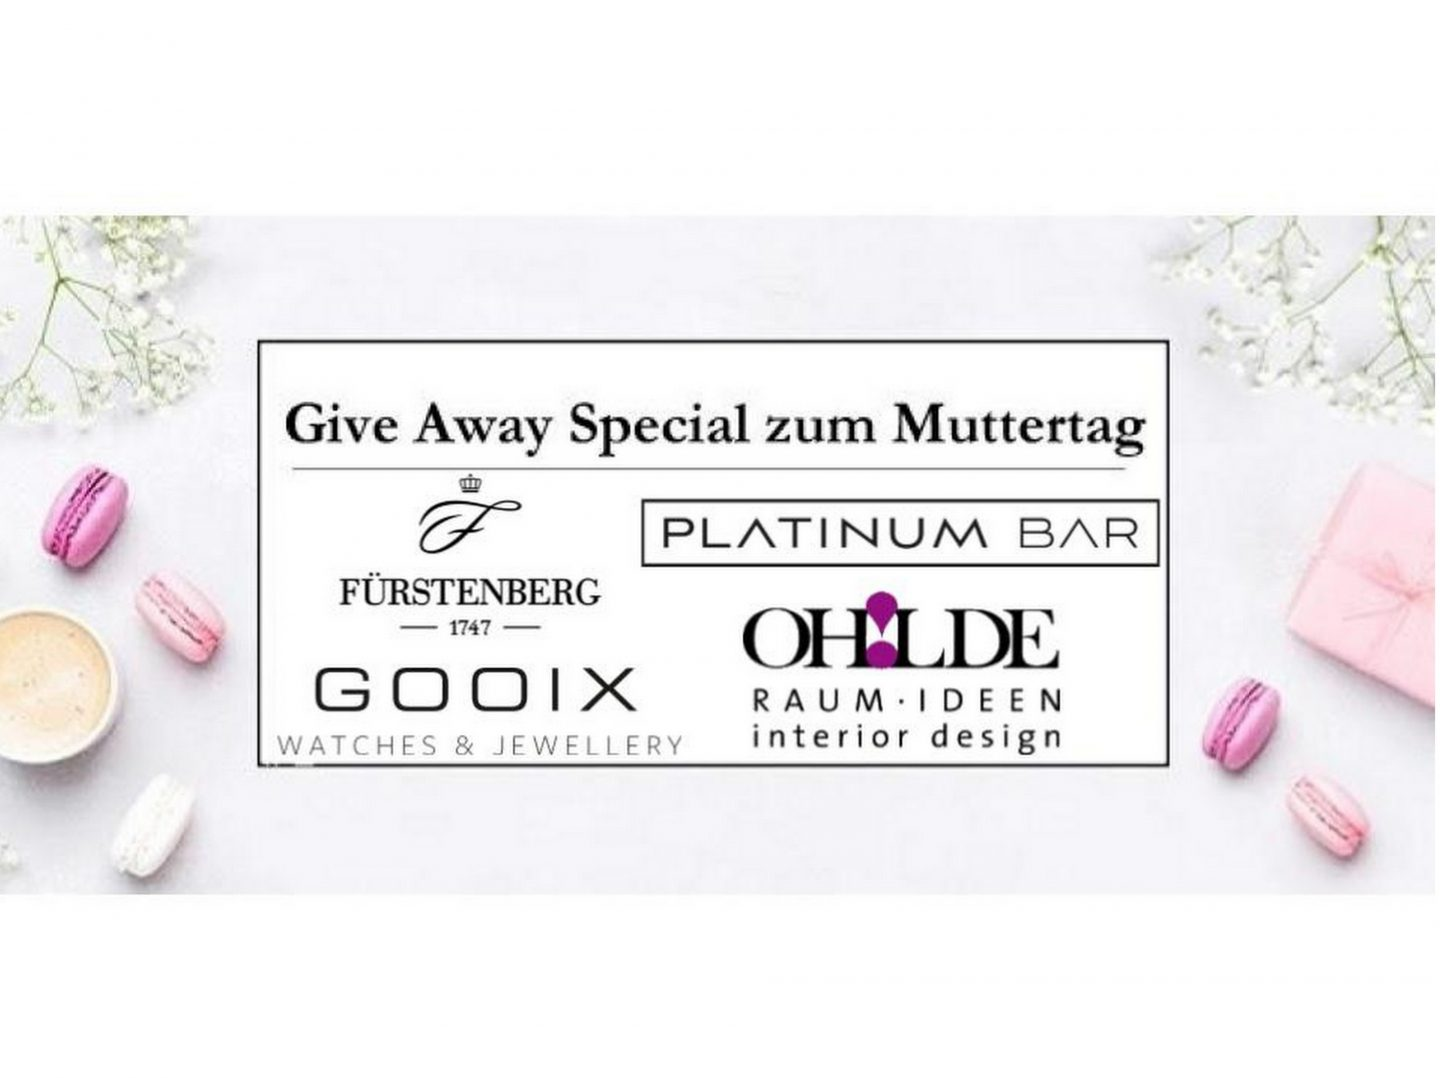 Give Away Special zum Muttertag